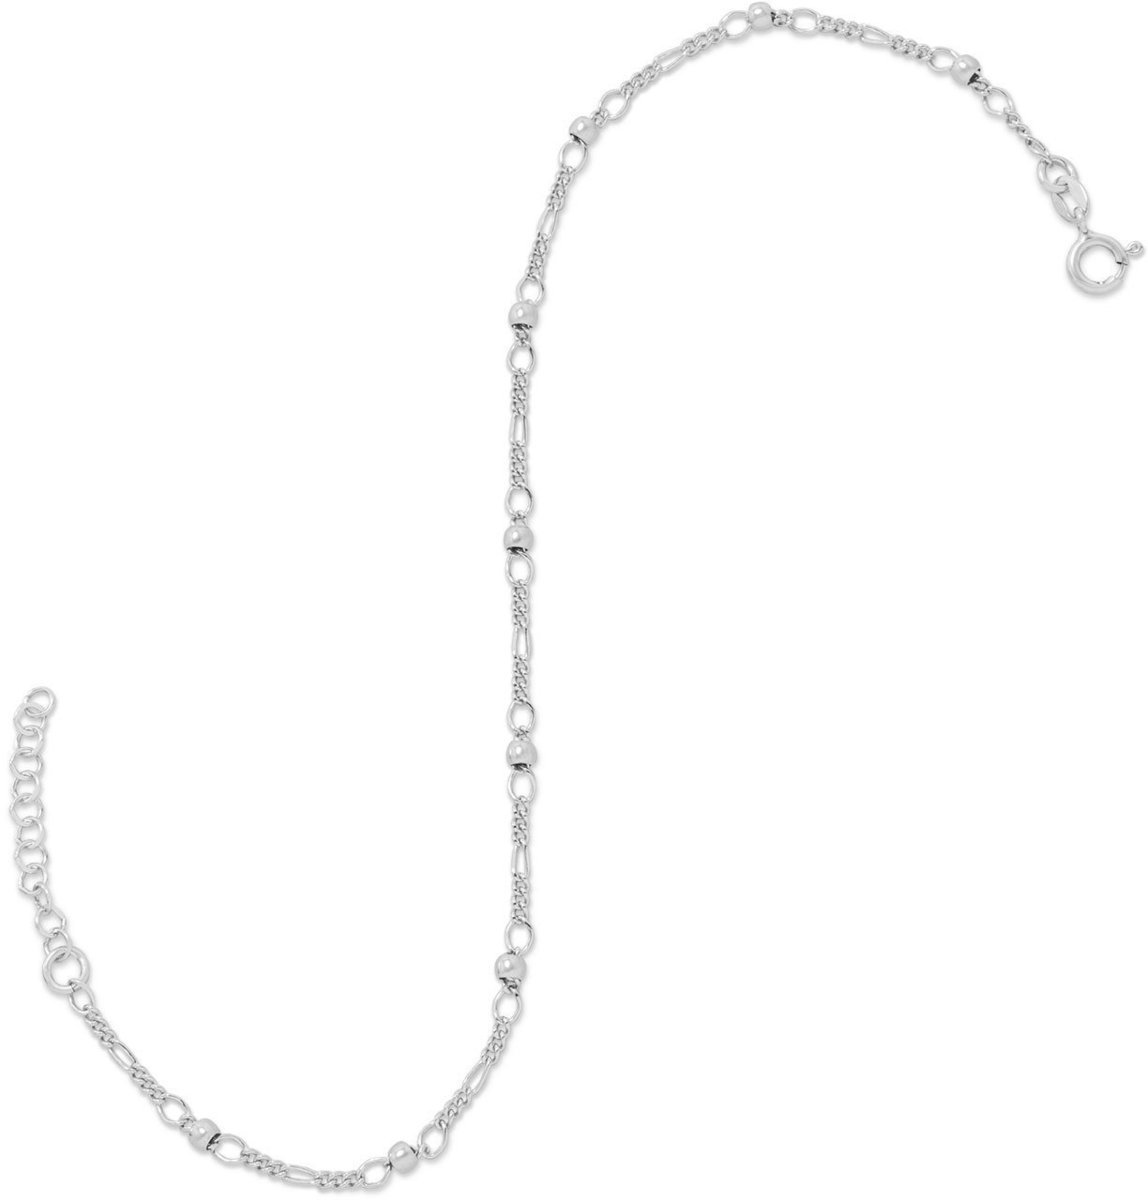 "11"" + 1"" Figaro Chain Anklet with Beads 925 Sterling Silver"